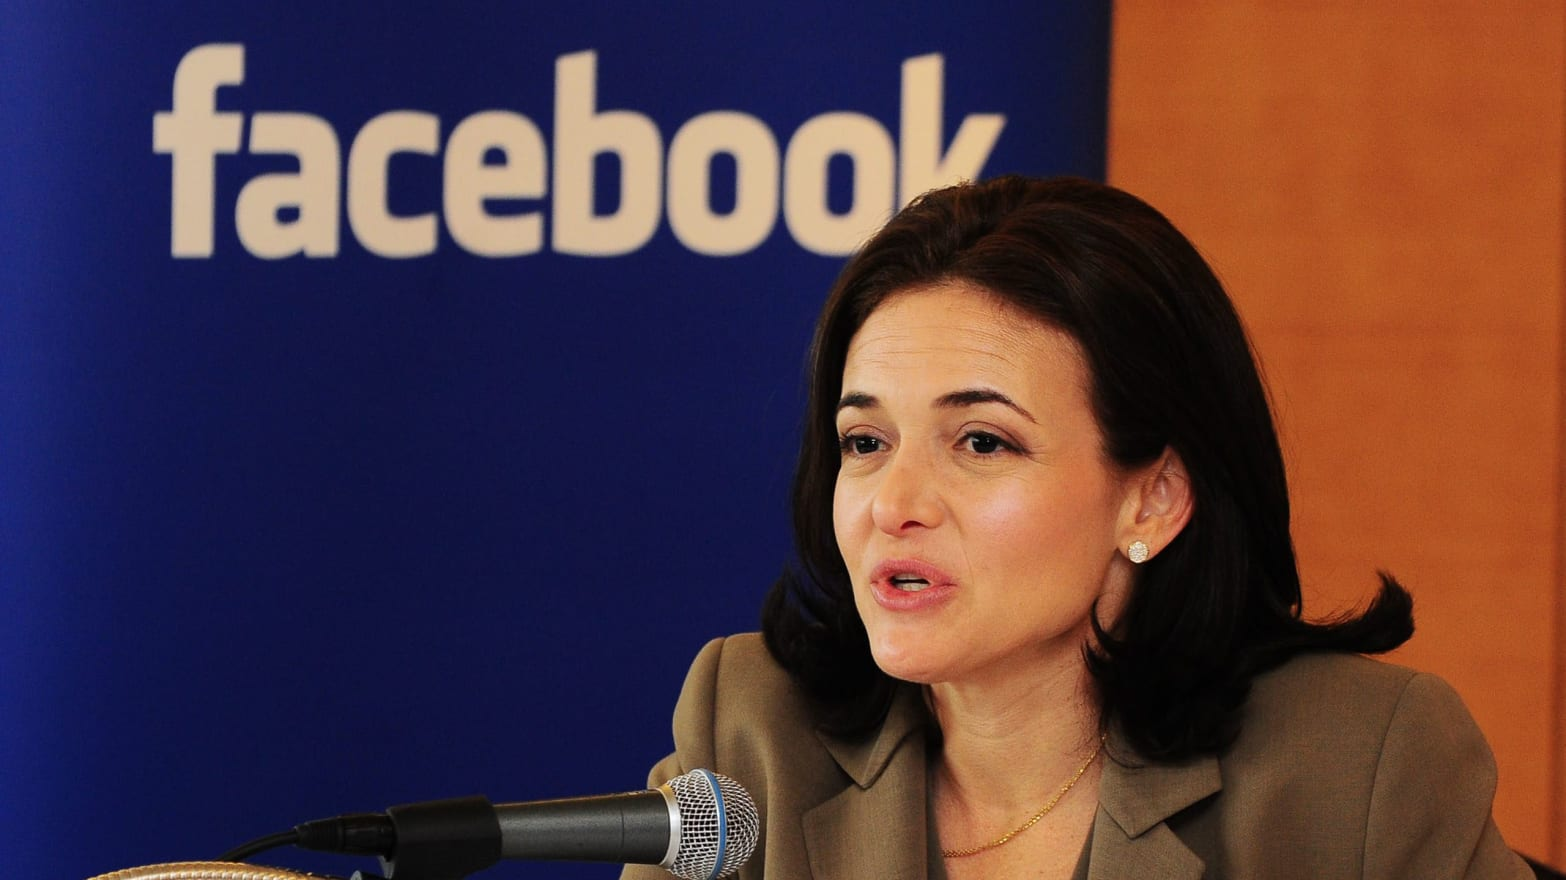 Facebook to provide $100M in grants to small businesses amid coronavirus pandemic